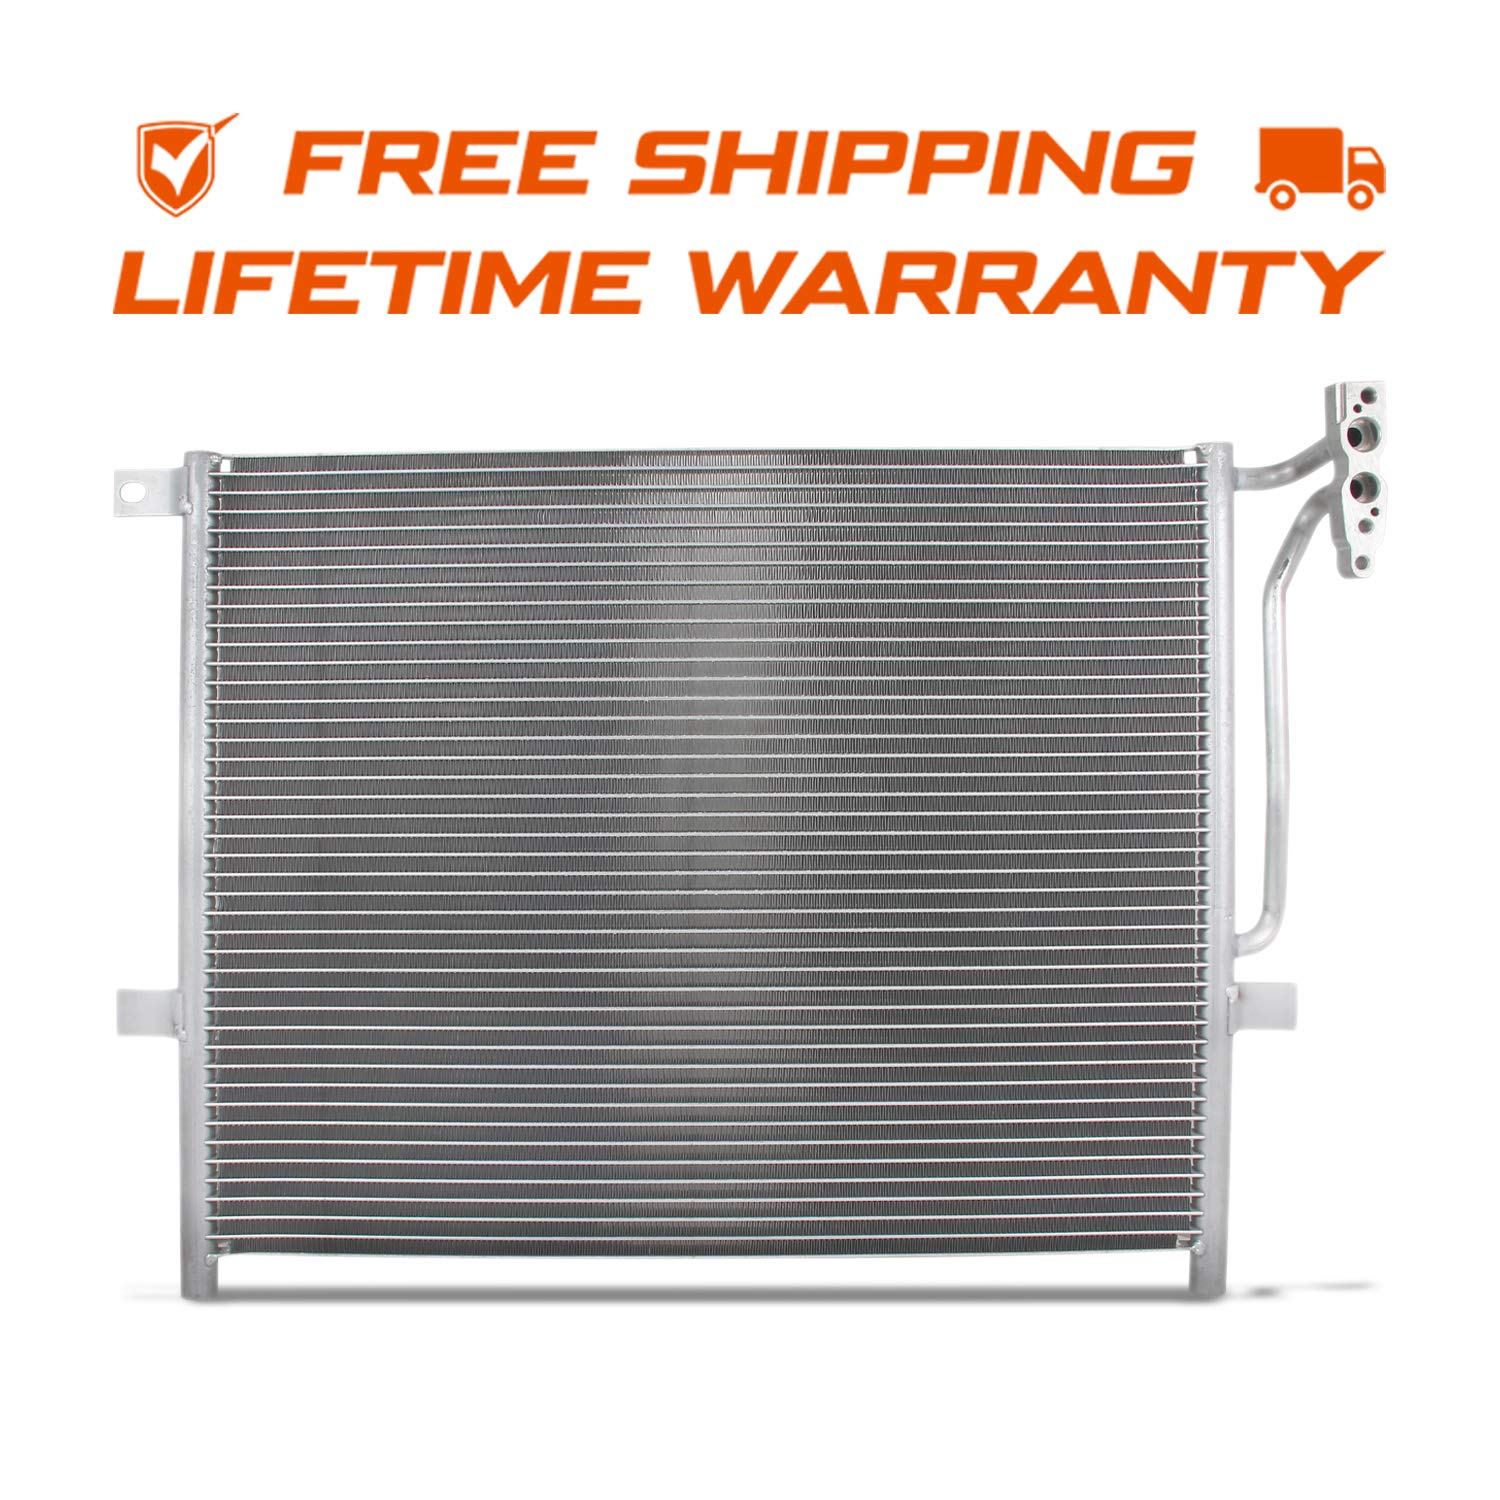 NEW 4994 Aluminum A//C AC Condenser Replacement For BMW E46 E90 1999-2006 3-series 2001-2006 M3 2003-2008 Z4